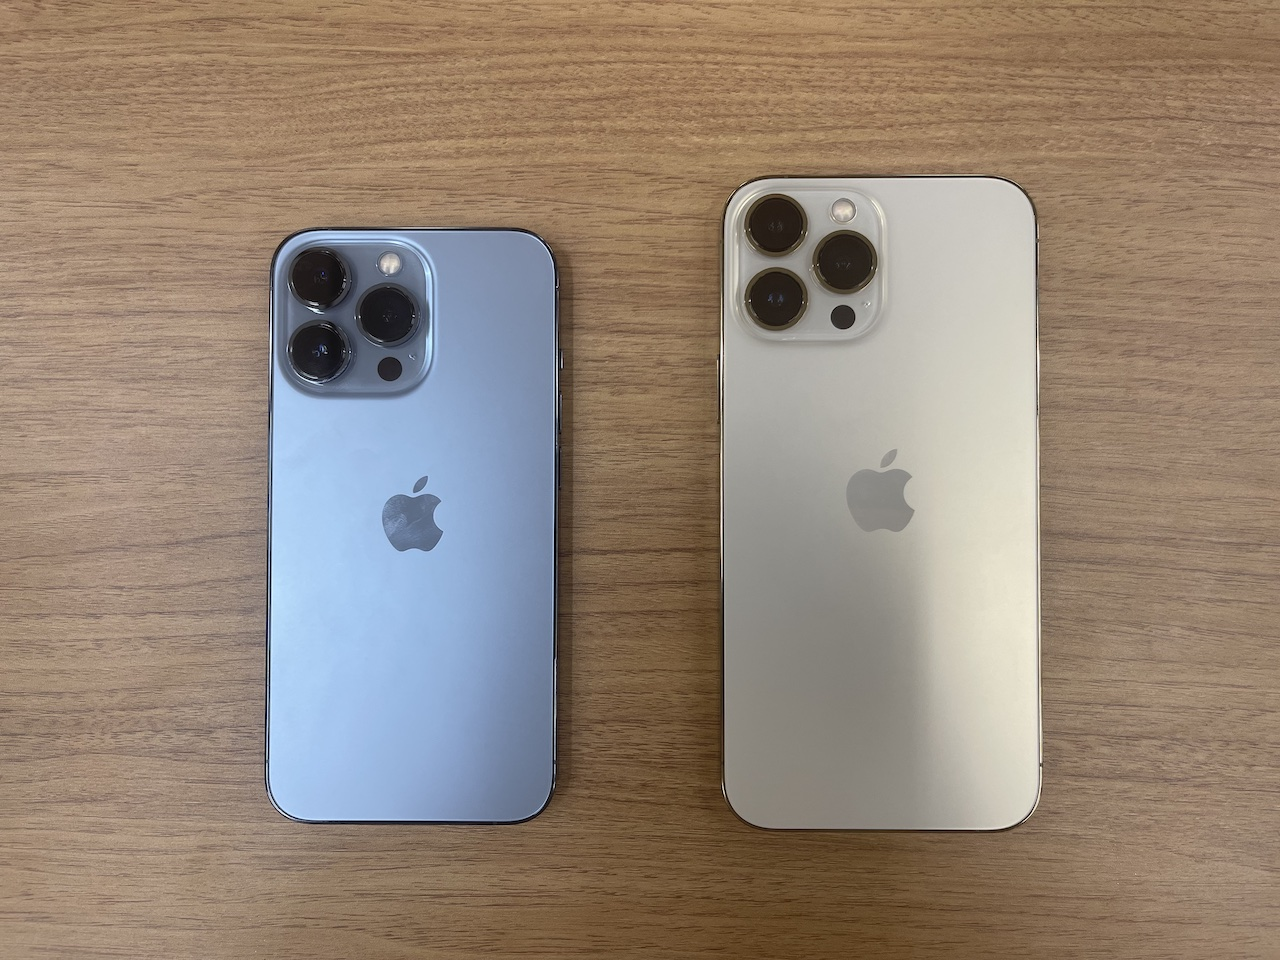 iPhone 13 ProとiPhone 13 Pro Max